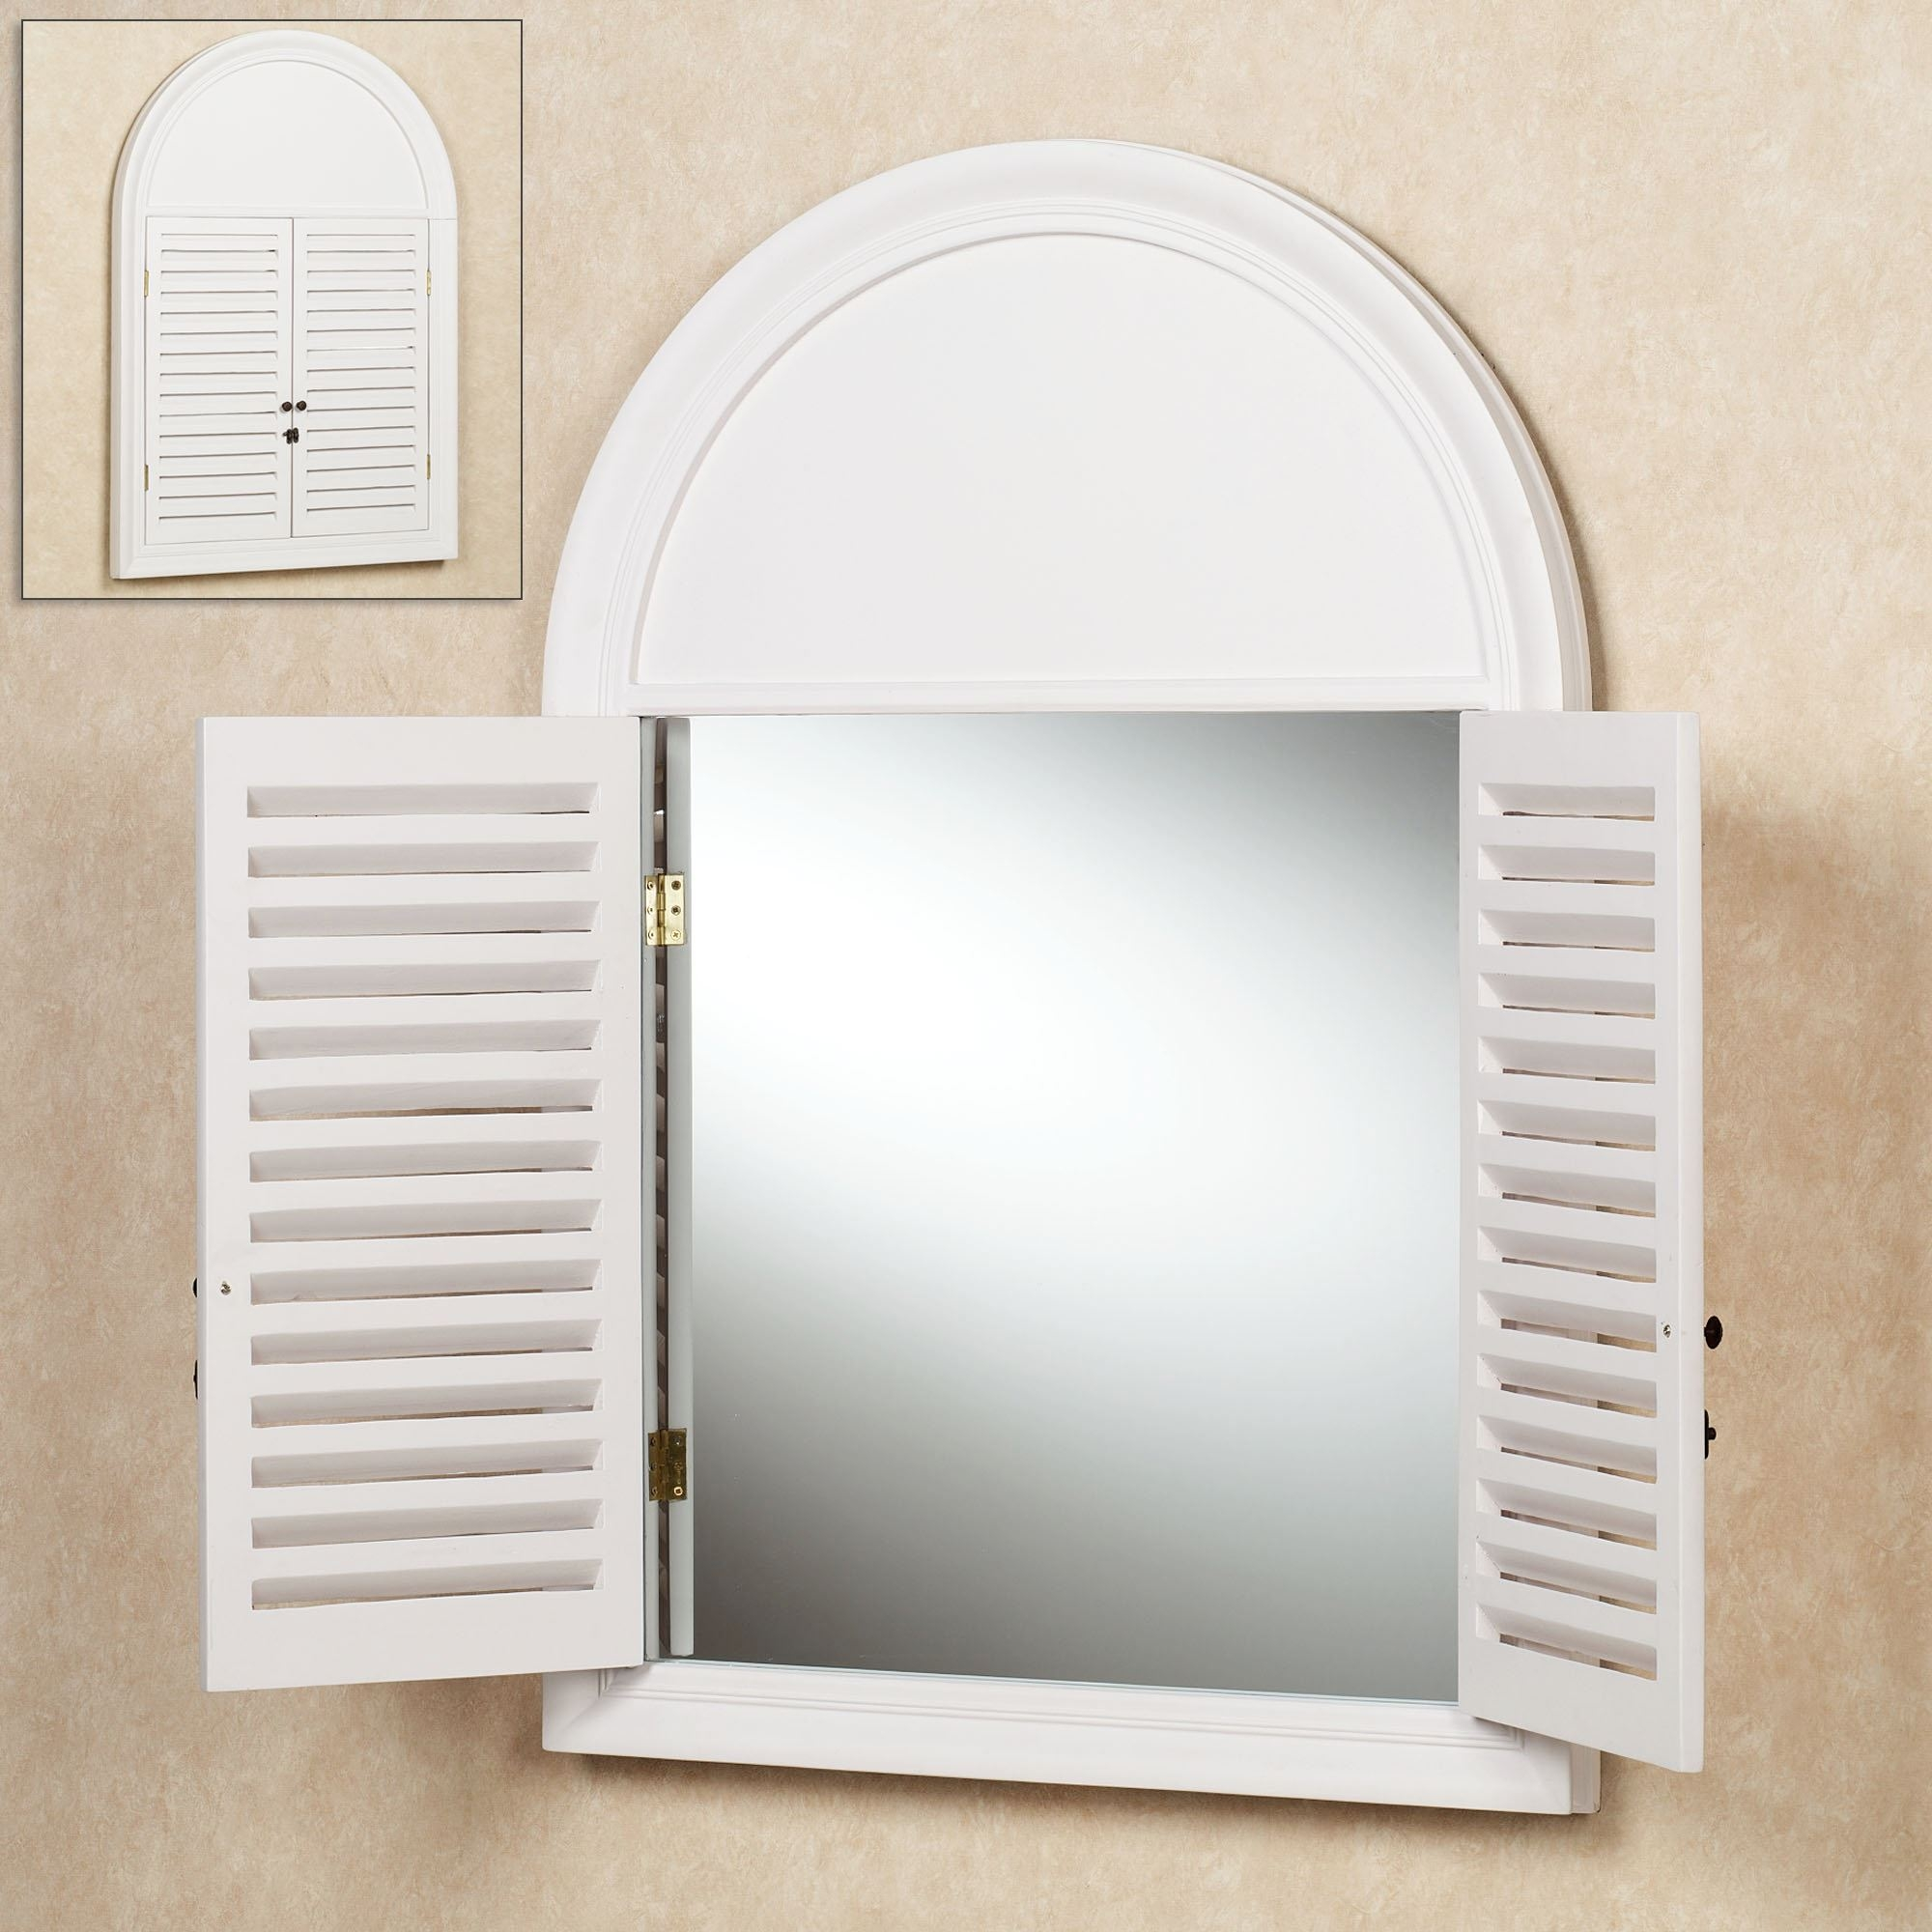 Large Wrought Iron Wall Mirror Window With Shutter